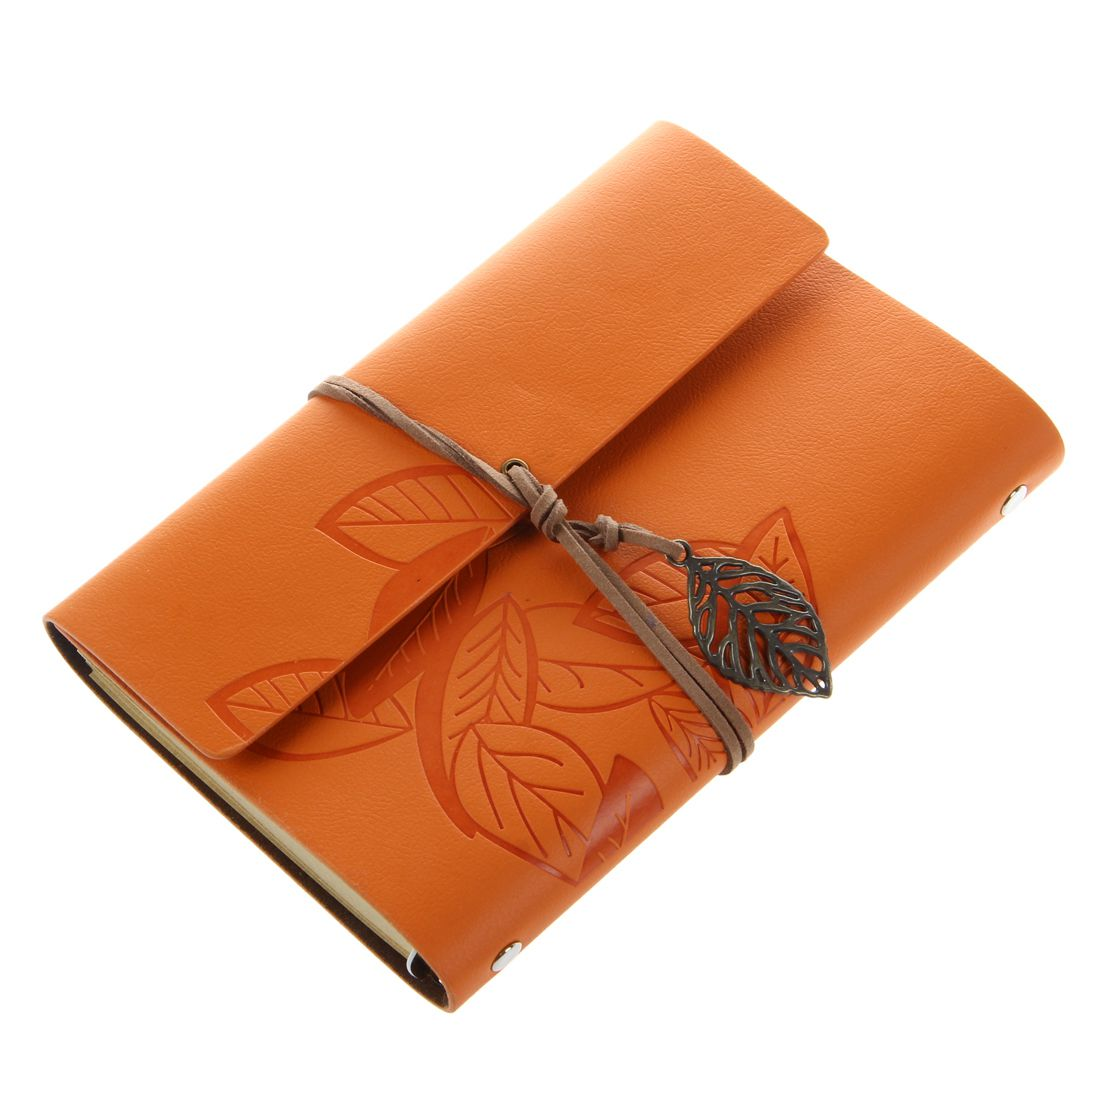 PU Leather Diary book Notebook Leaf Pendant Vintage Notebook 19x13.5cm, Orange